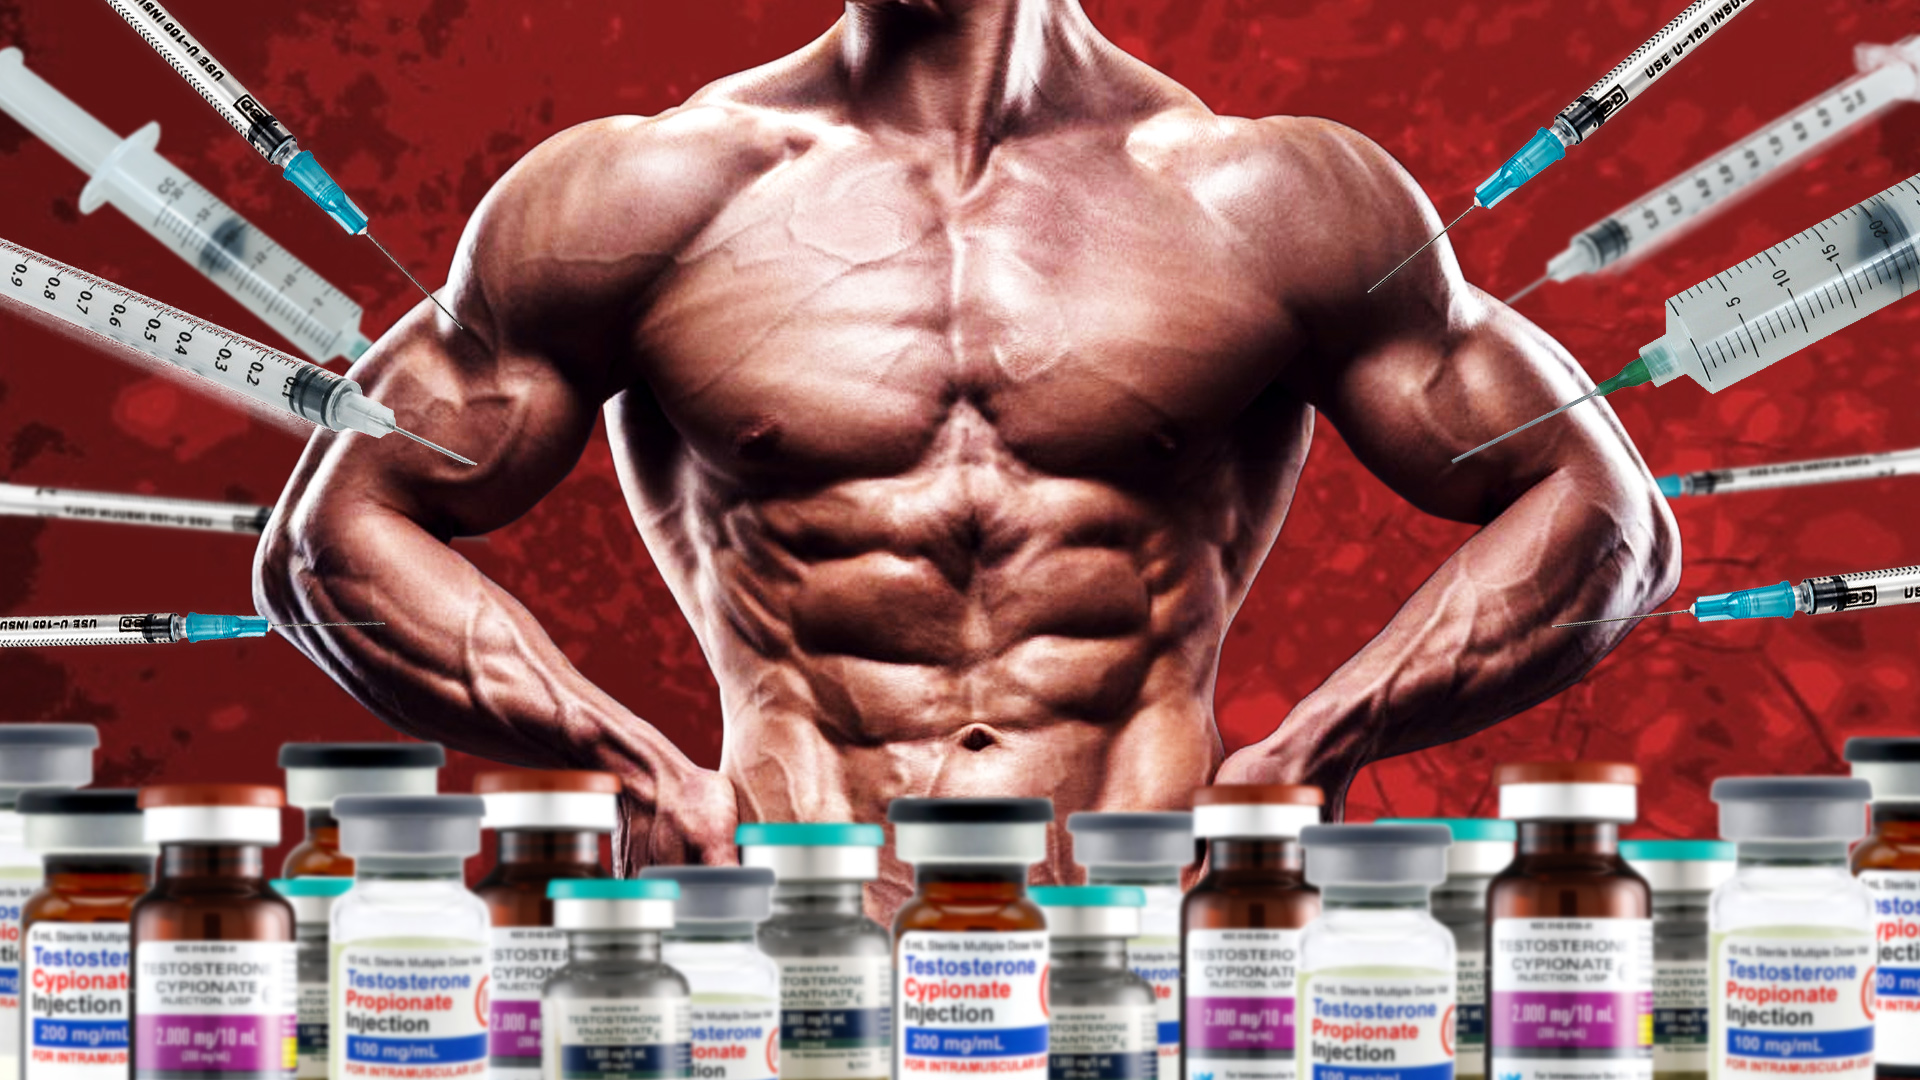 Testosterone Dosage For Bodybuilding | The Highest Dose Of Testo